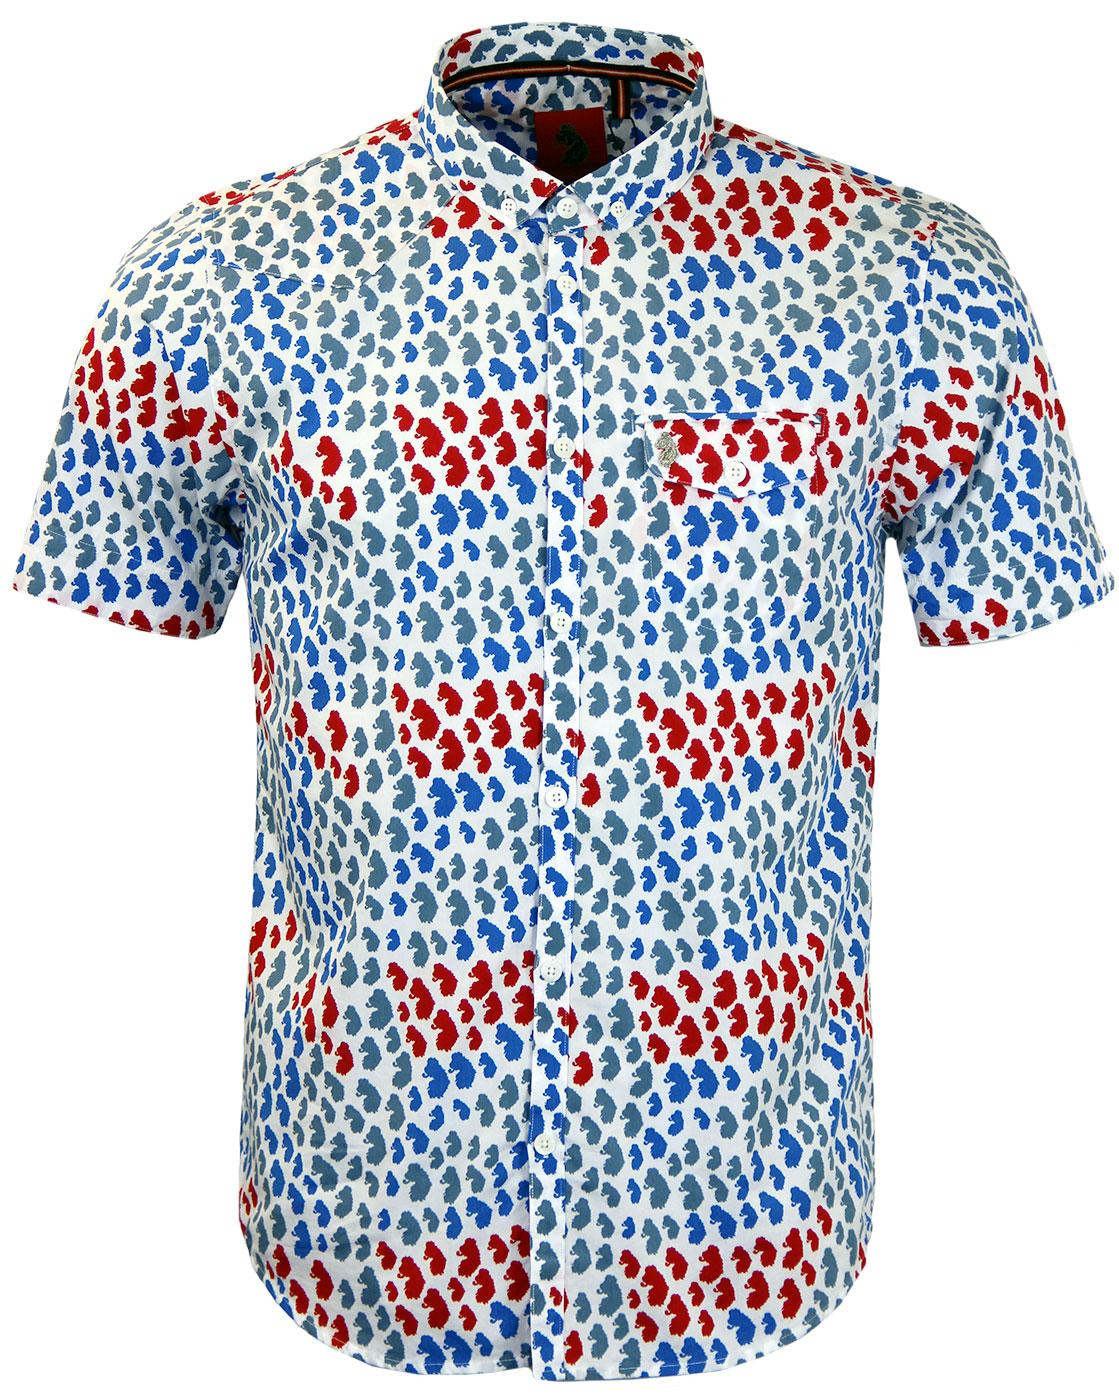 The Nappa LUKE 1977 Retro Mod Lion Print SS Shirt